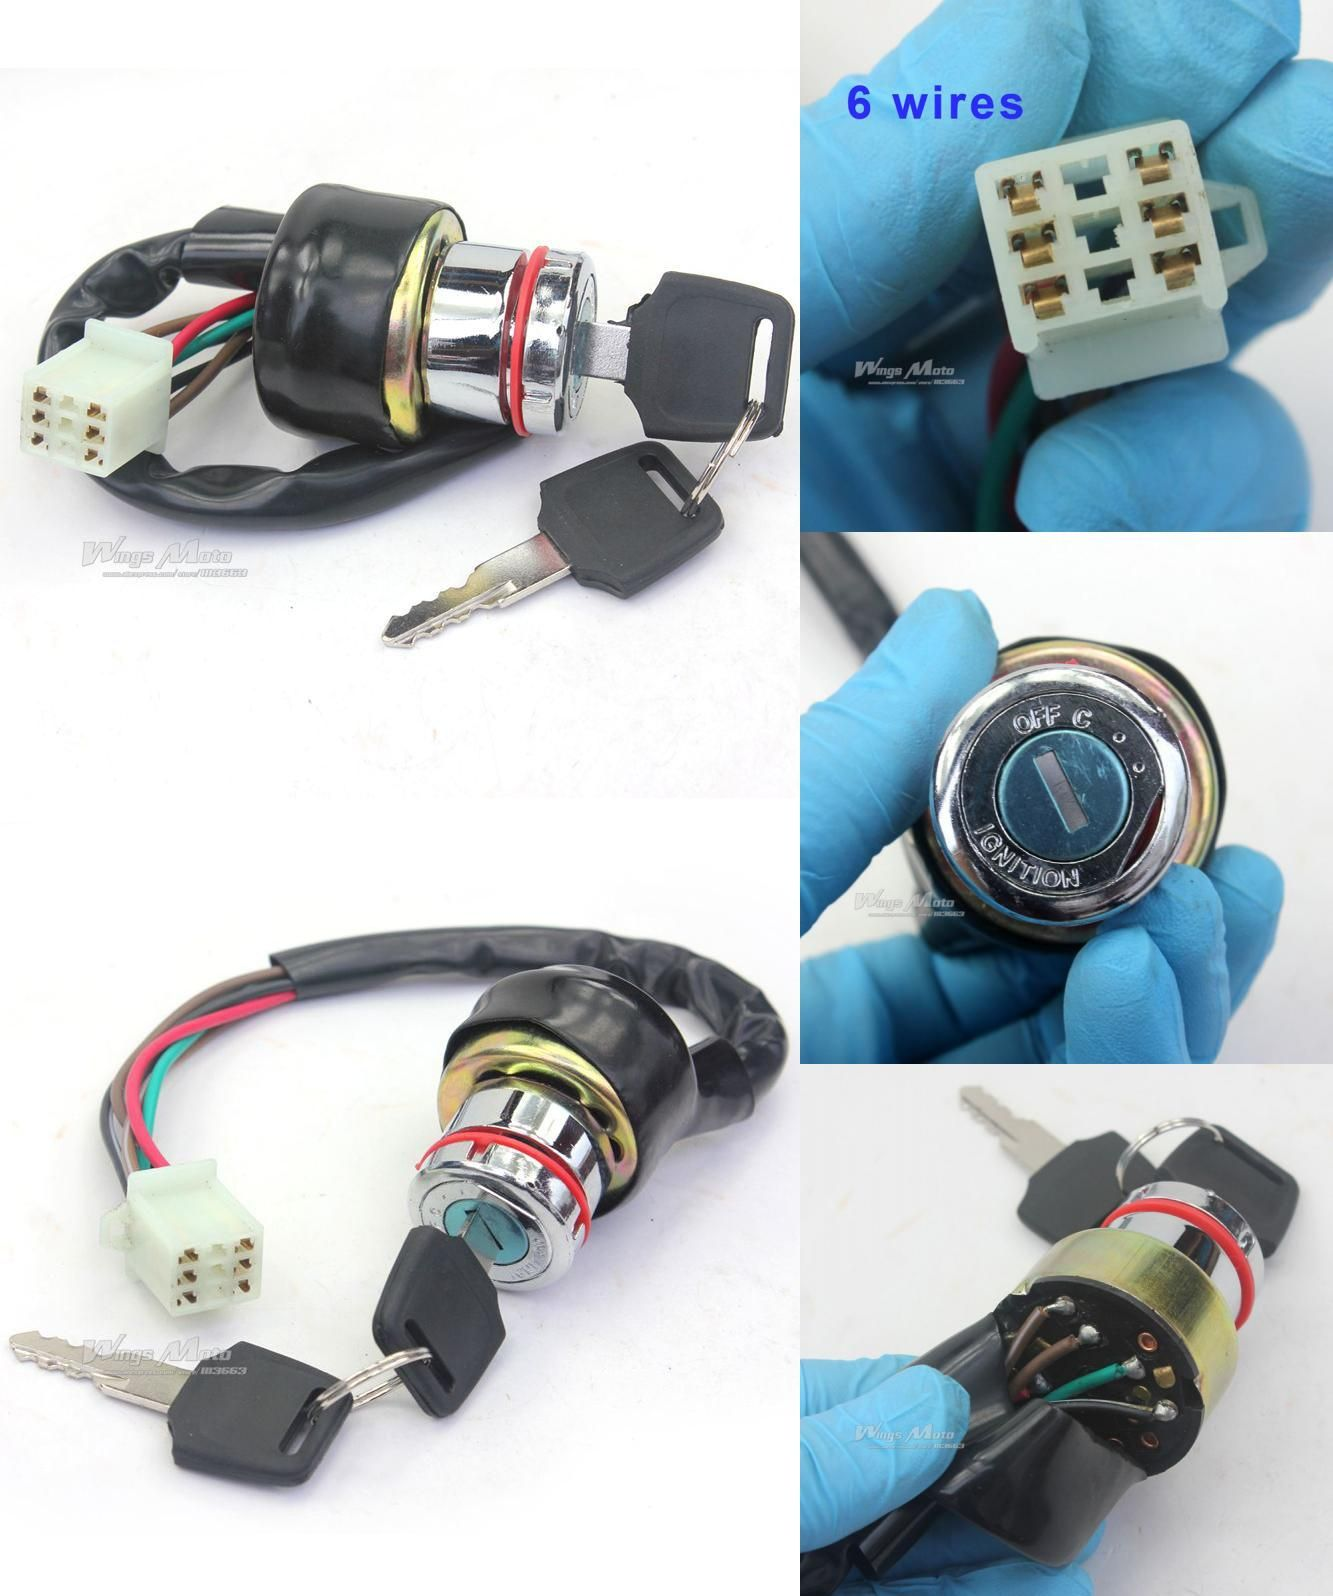 visit to buy] adjustable folding extendable brake clutch lever for Rmx450z Front Fender 2012 Msp On Wiring Harness For [visit to buy] 6 wires ignition key switch 90cc 125cc 150cc gokart atv dirt